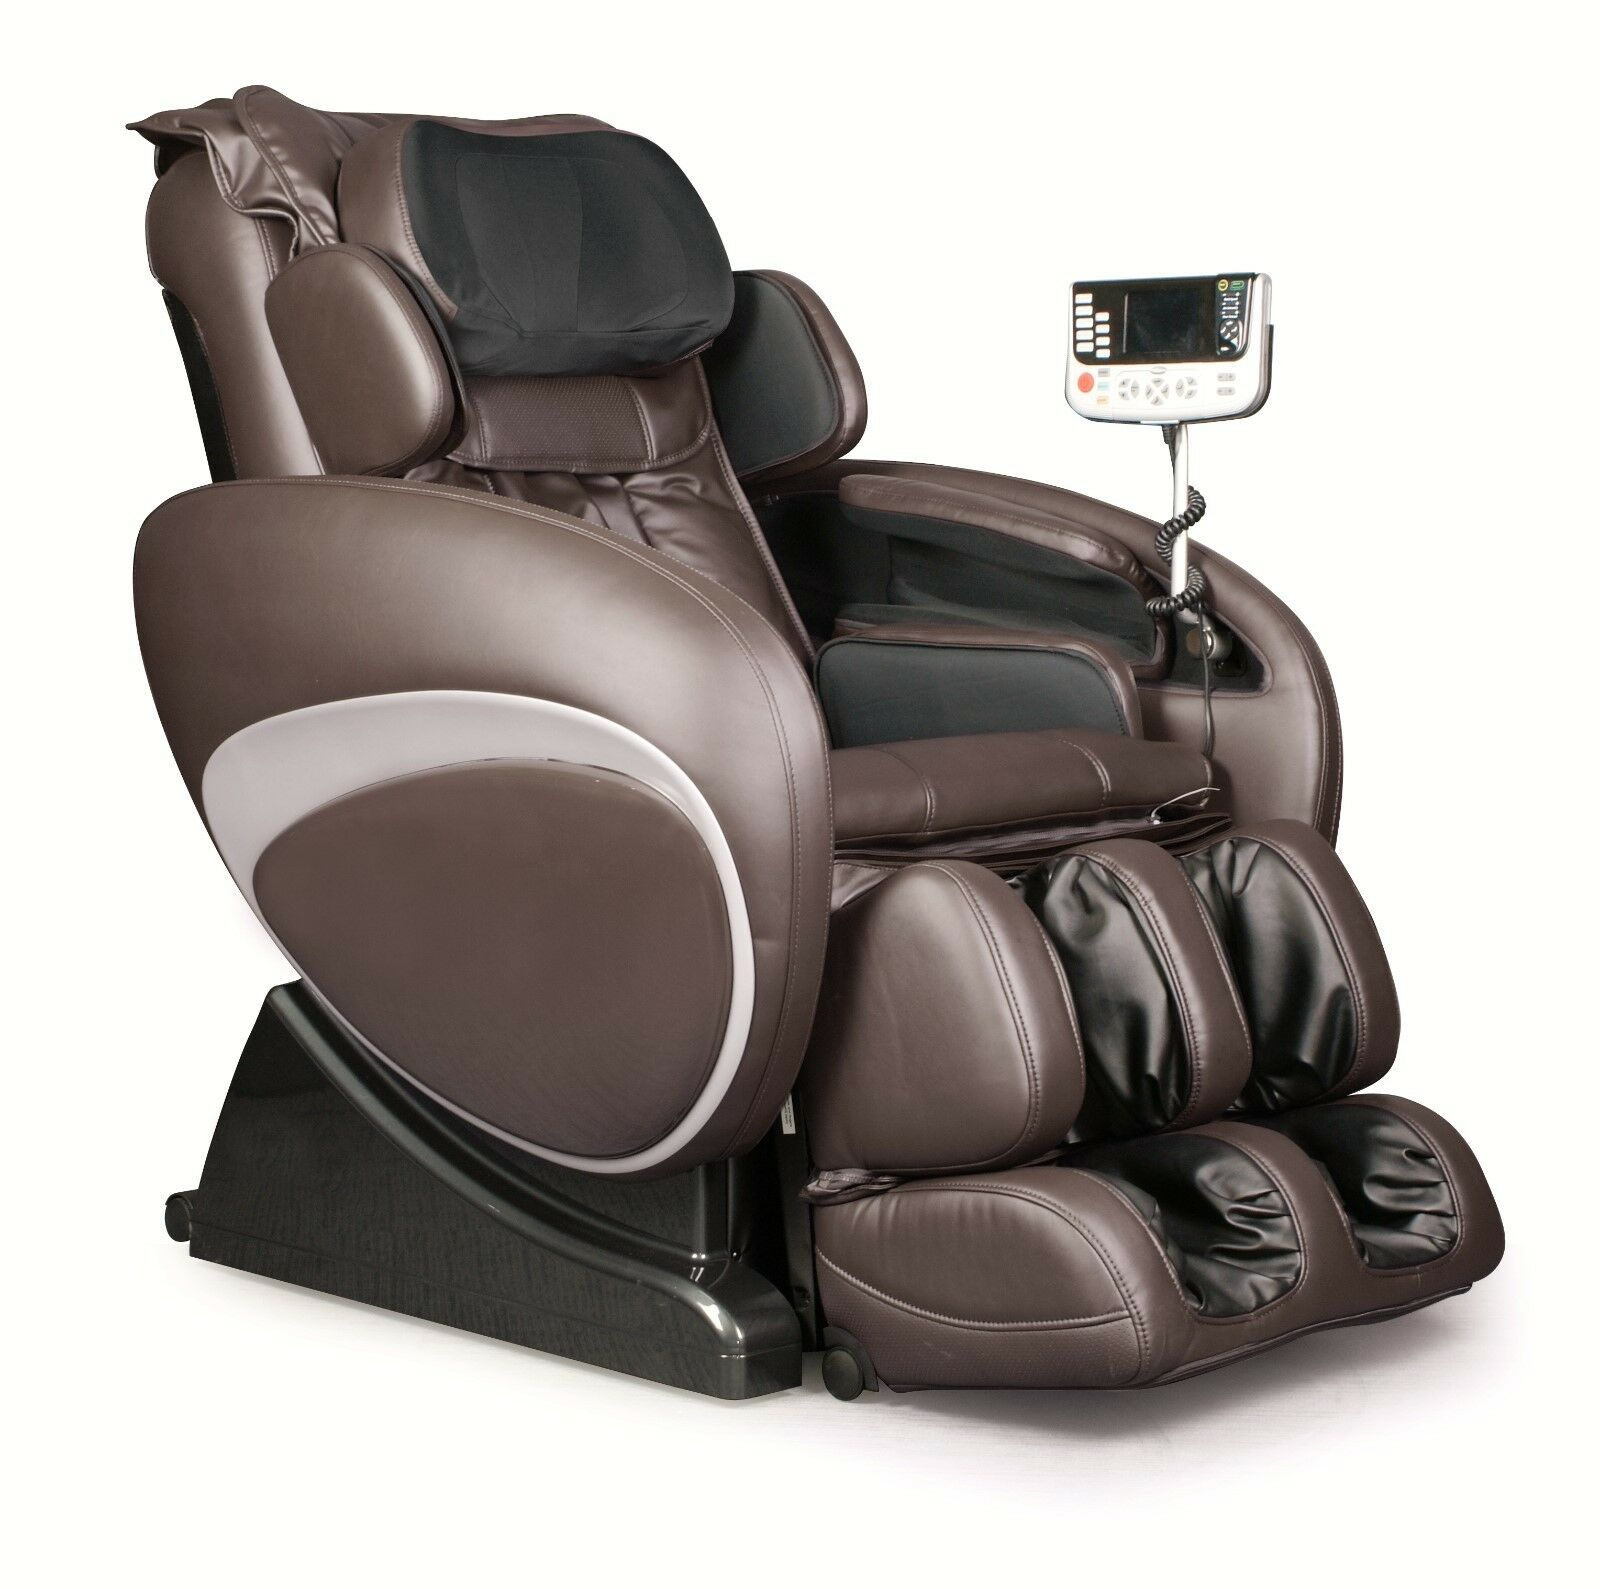 Brown Osaki Os 4000 Zero Gravity Massage Chair Recliner